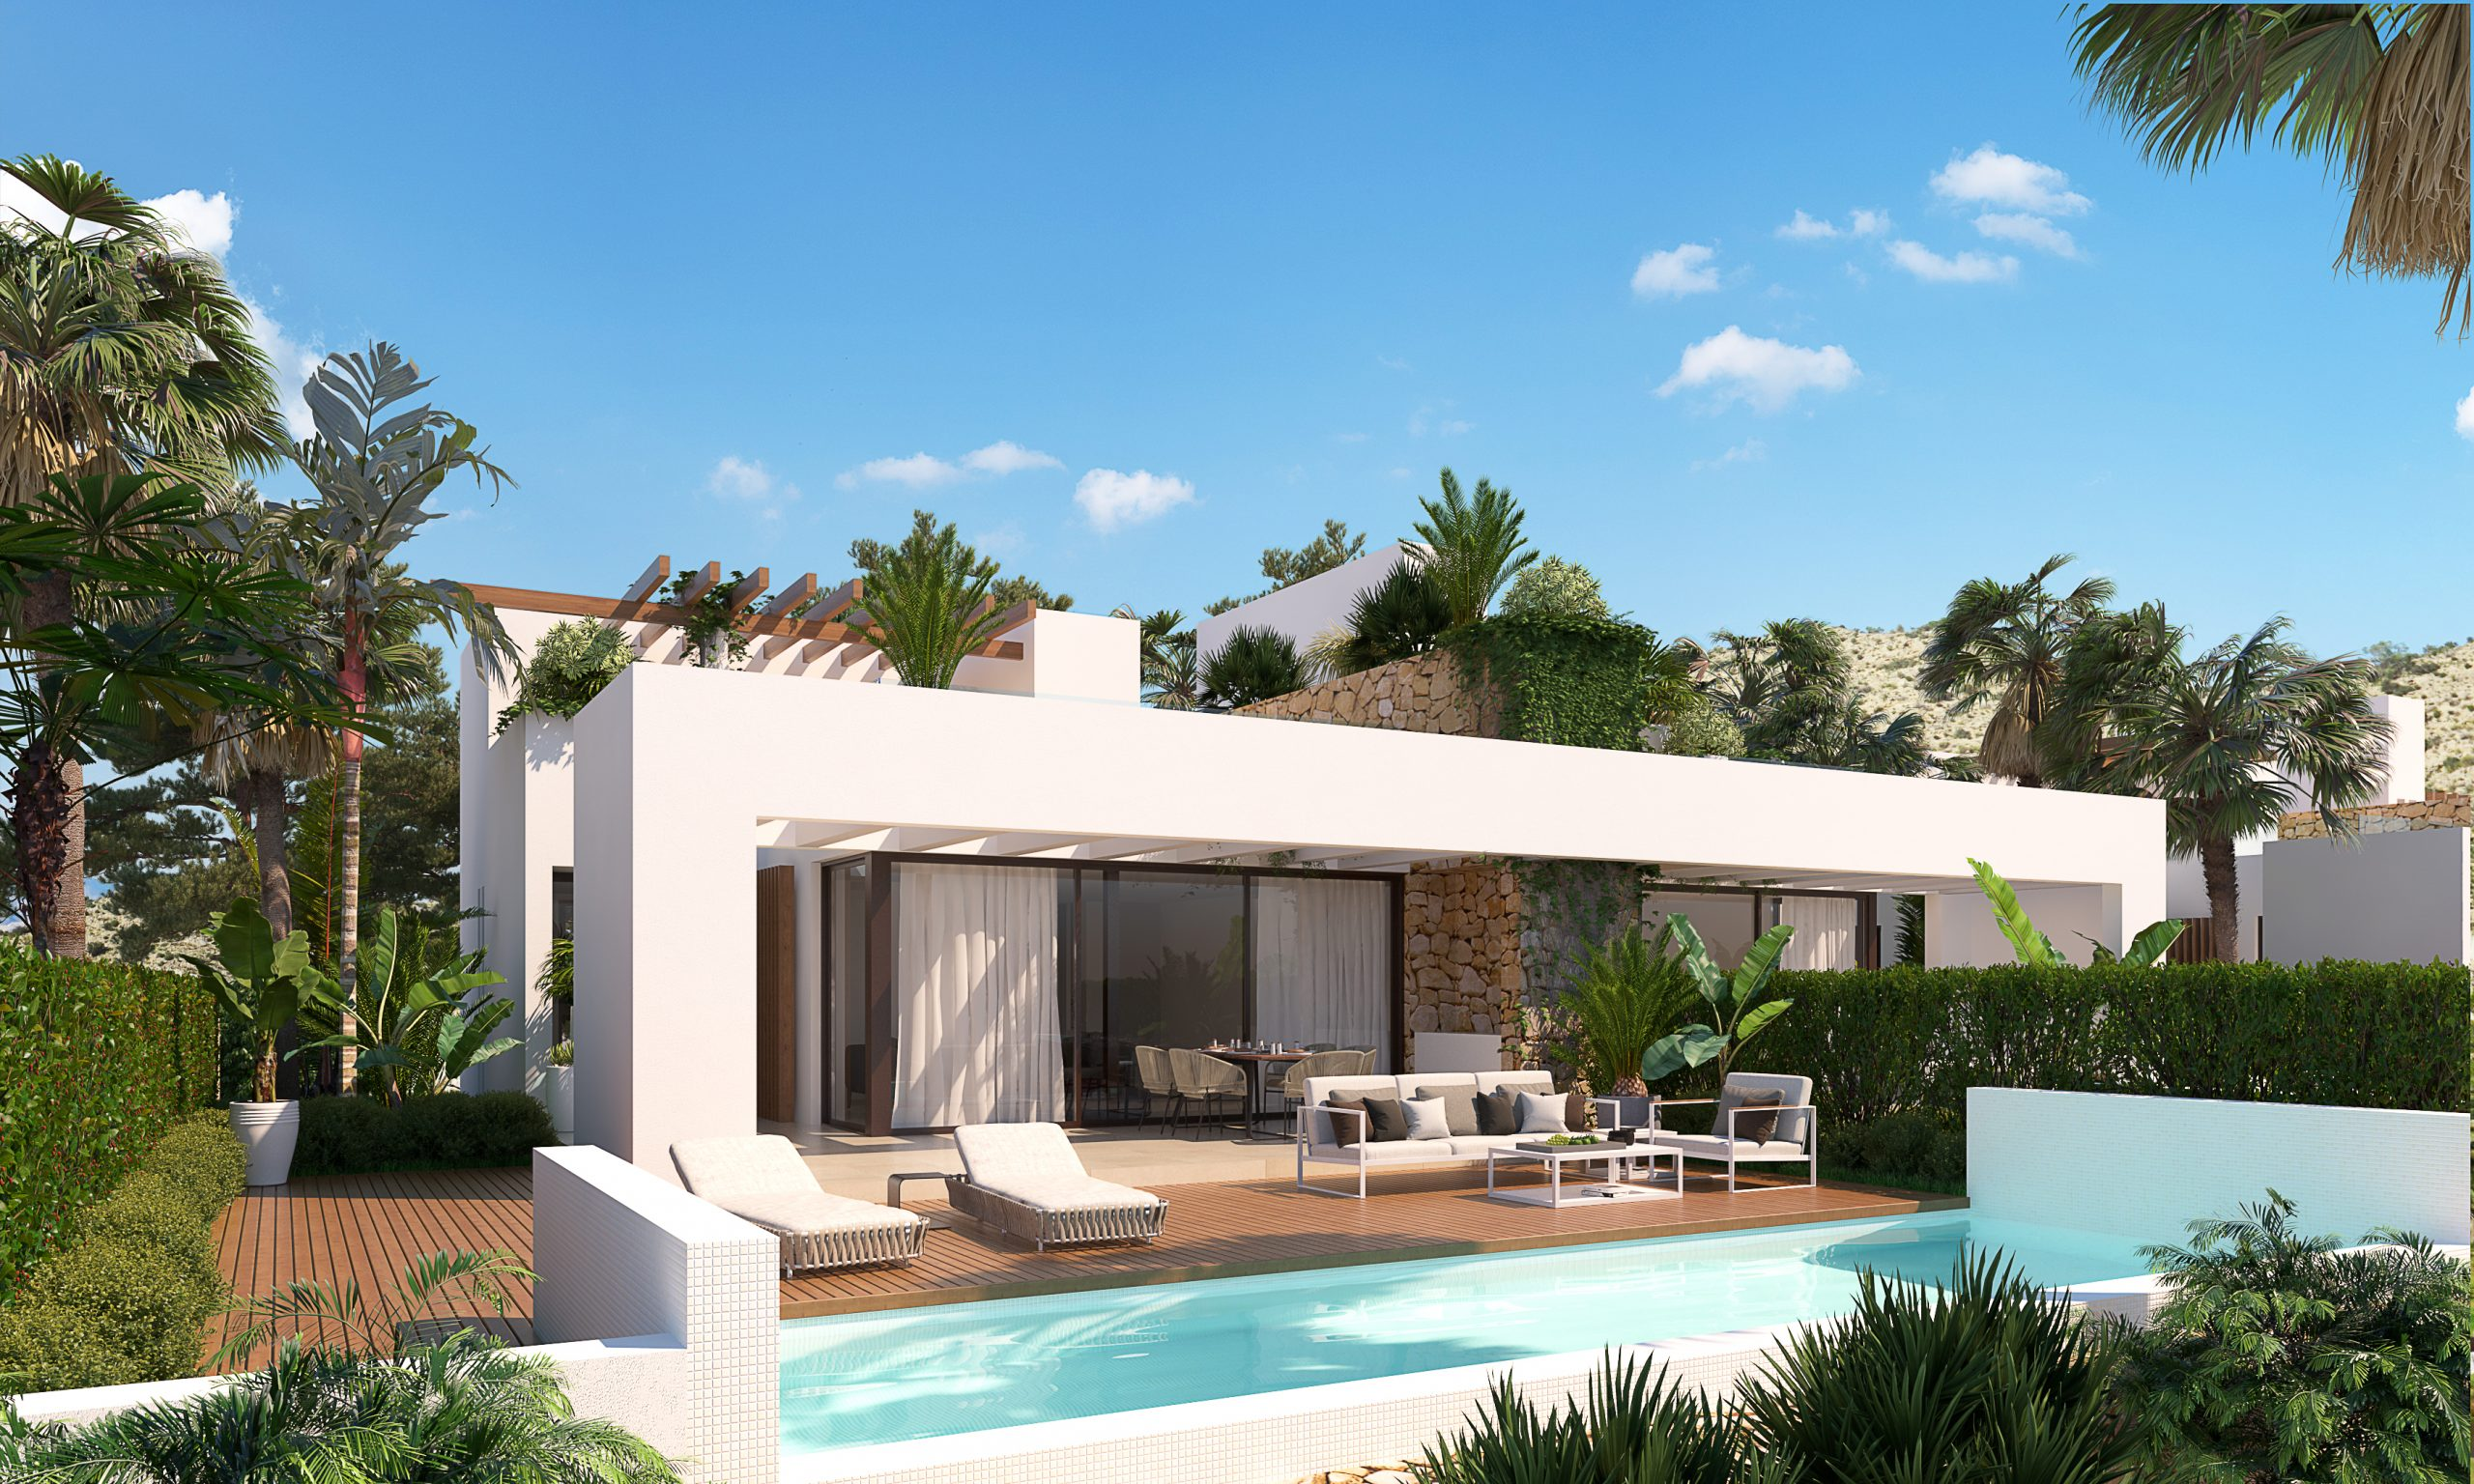 3 bedroom villas with private pool in Font de Llop (Aspe) 20 minutes from Alicante airport